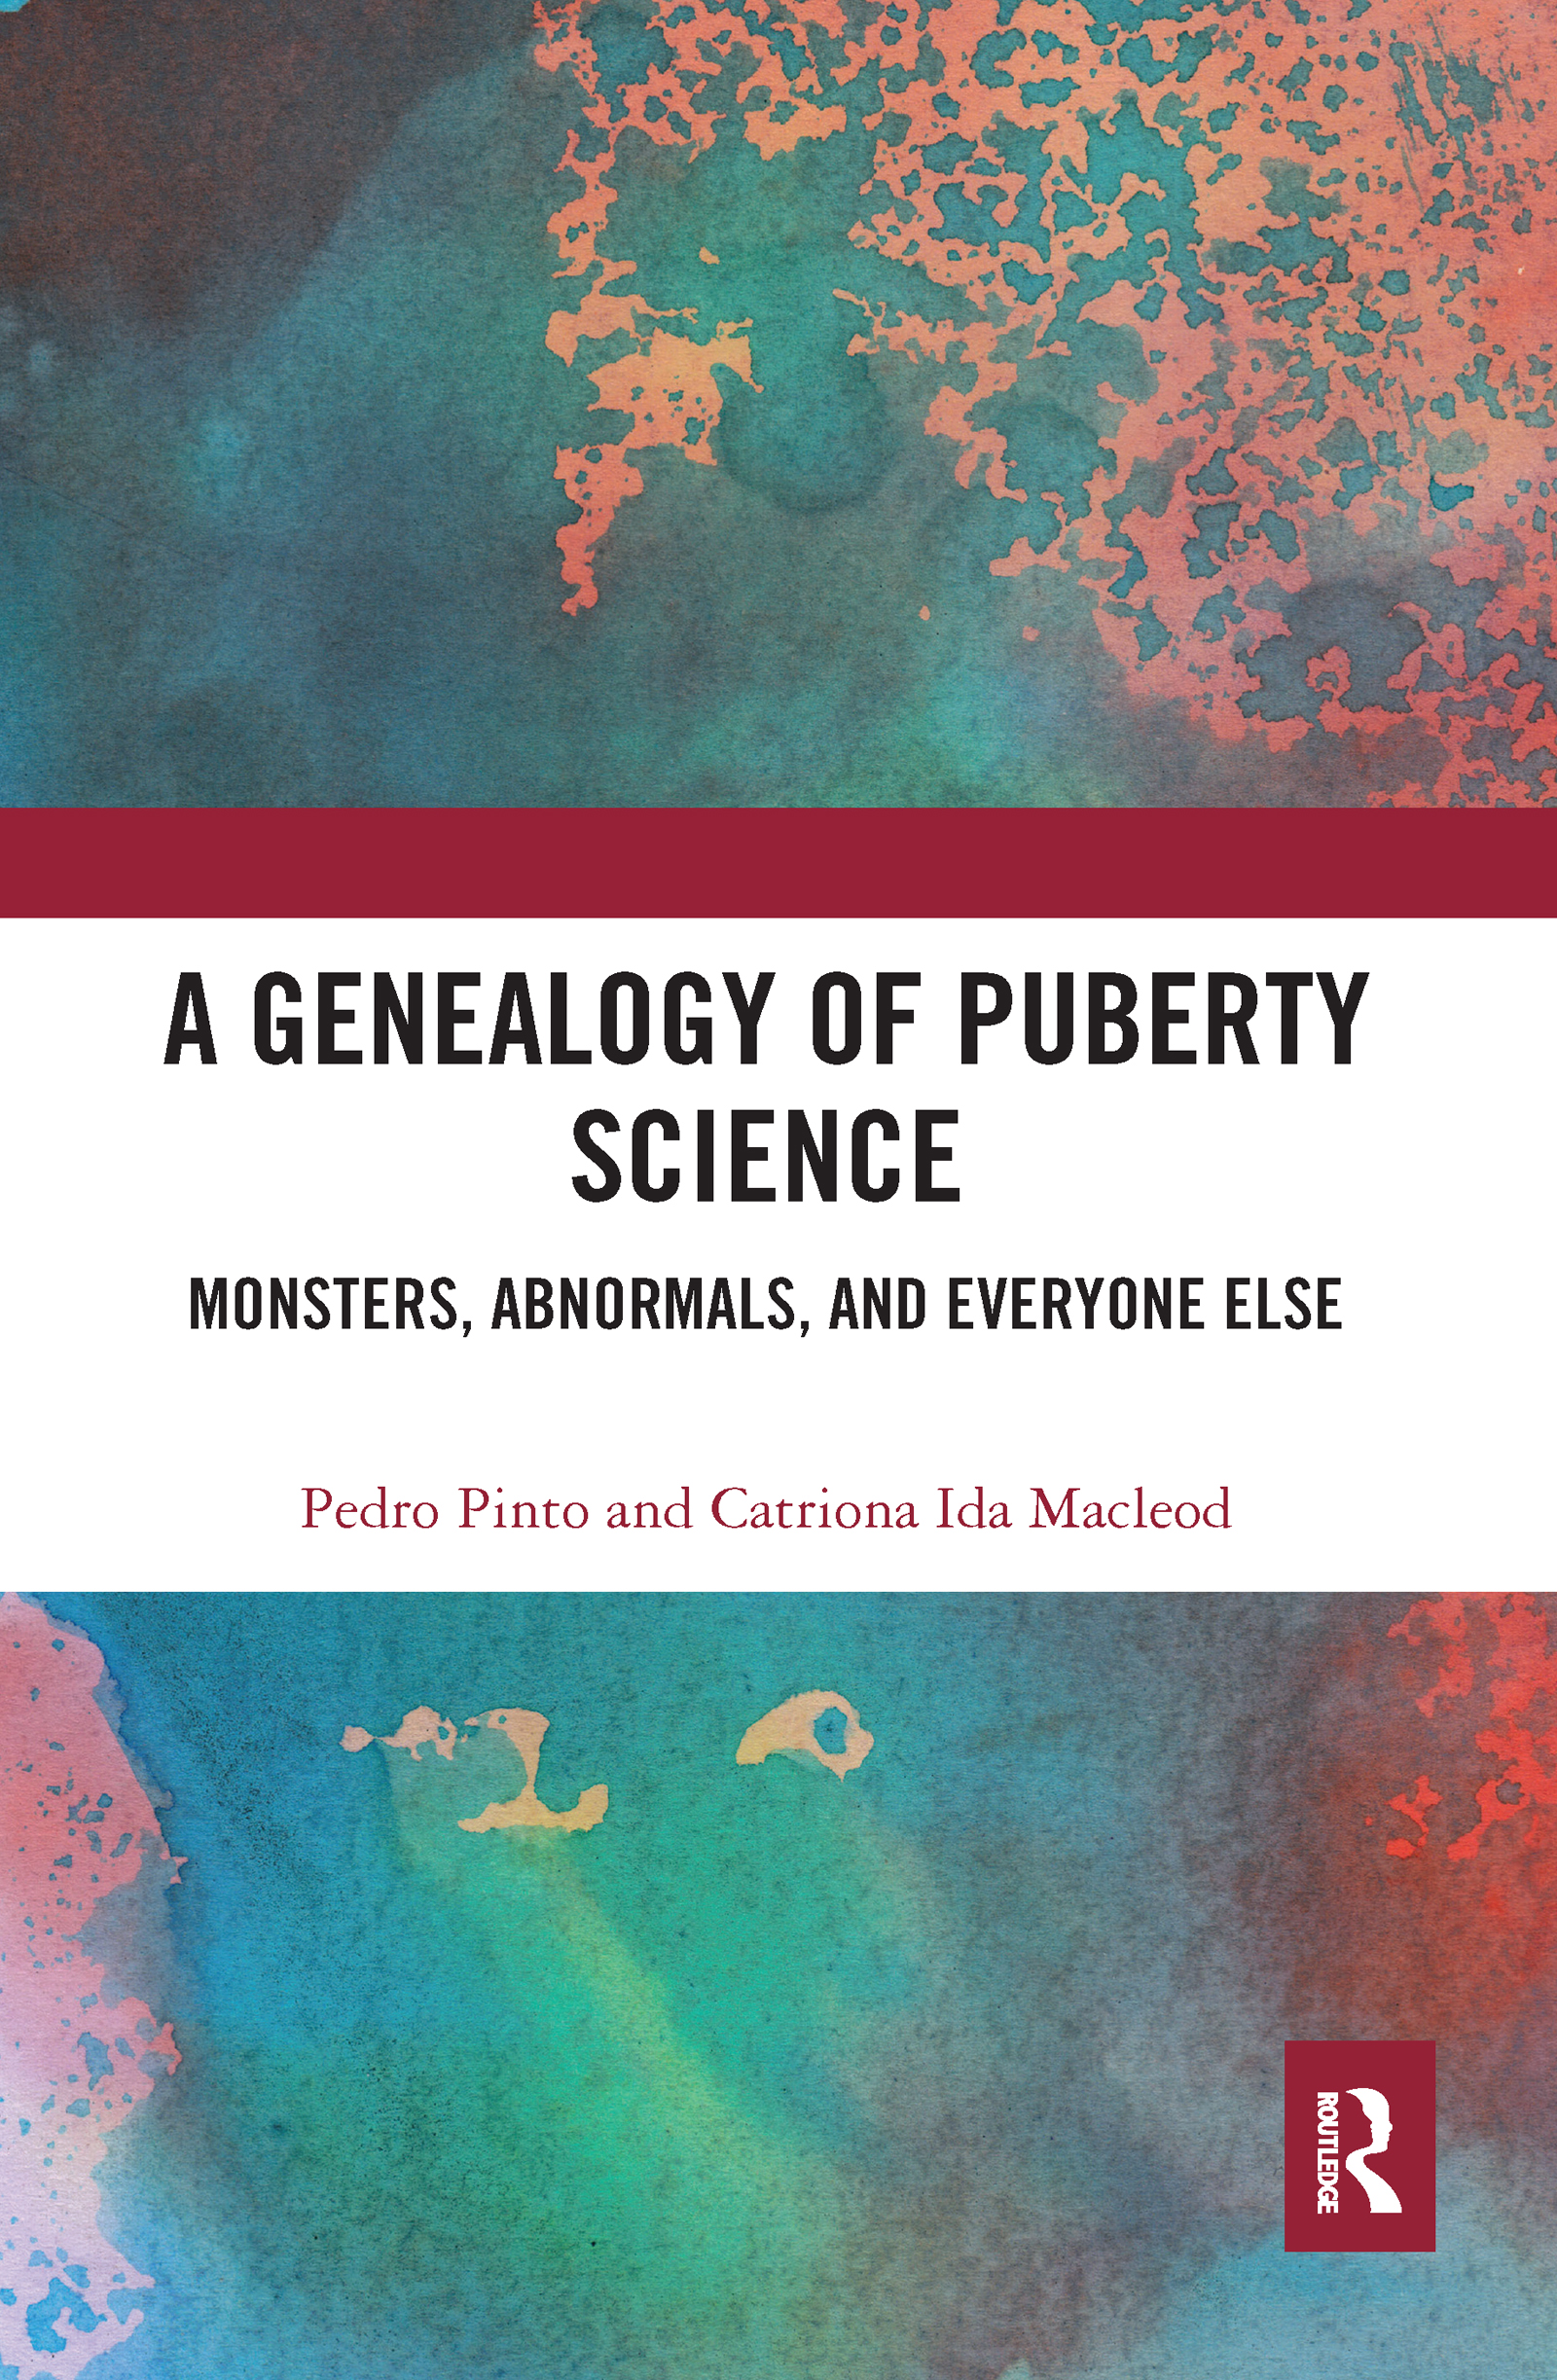 A Genealogy of Puberty Science